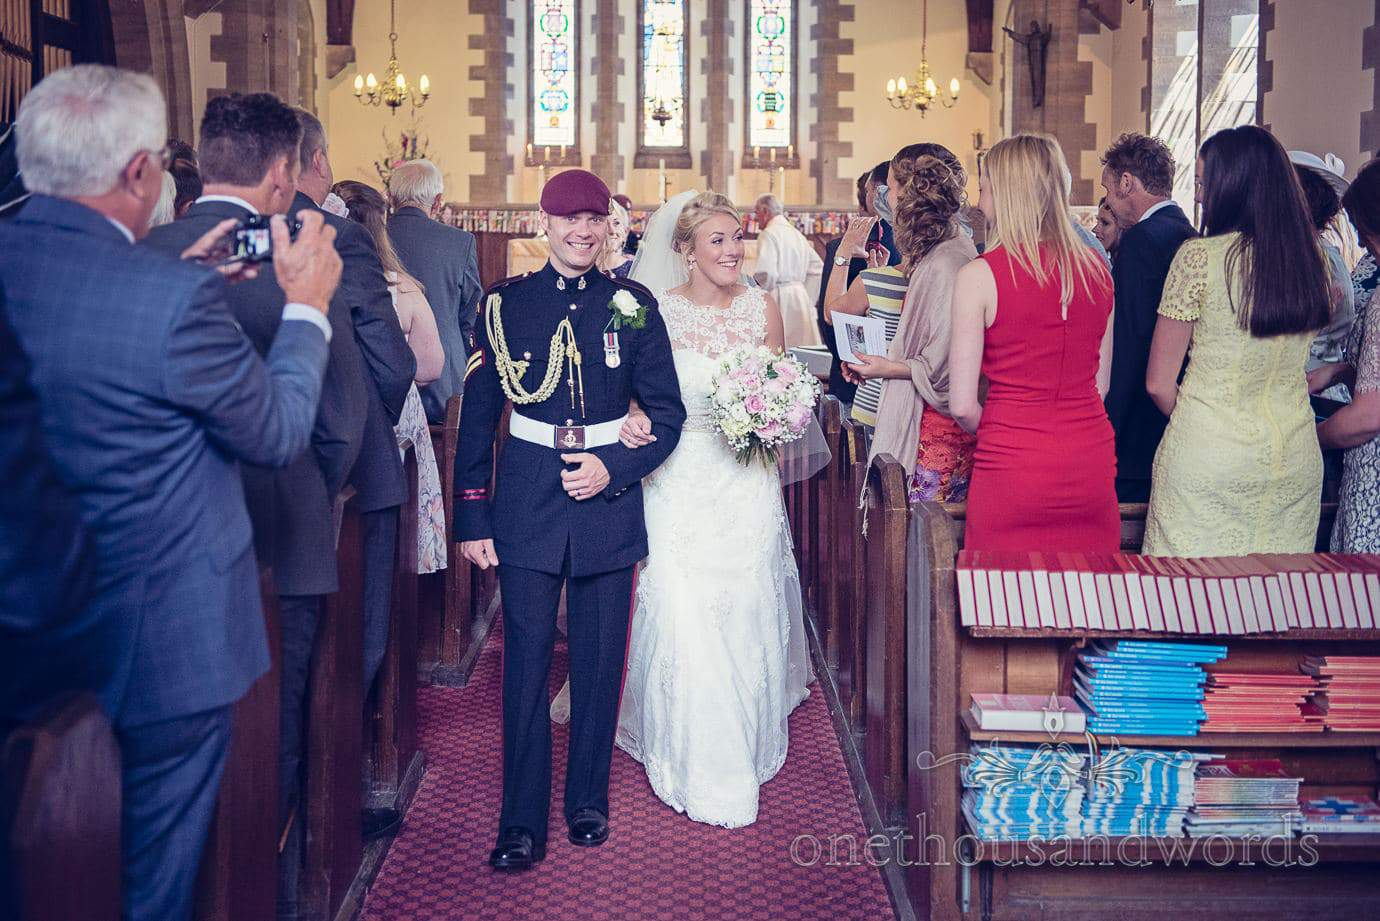 Bride and military groom walk down the aisle at St Marks Church wedding in Swanage